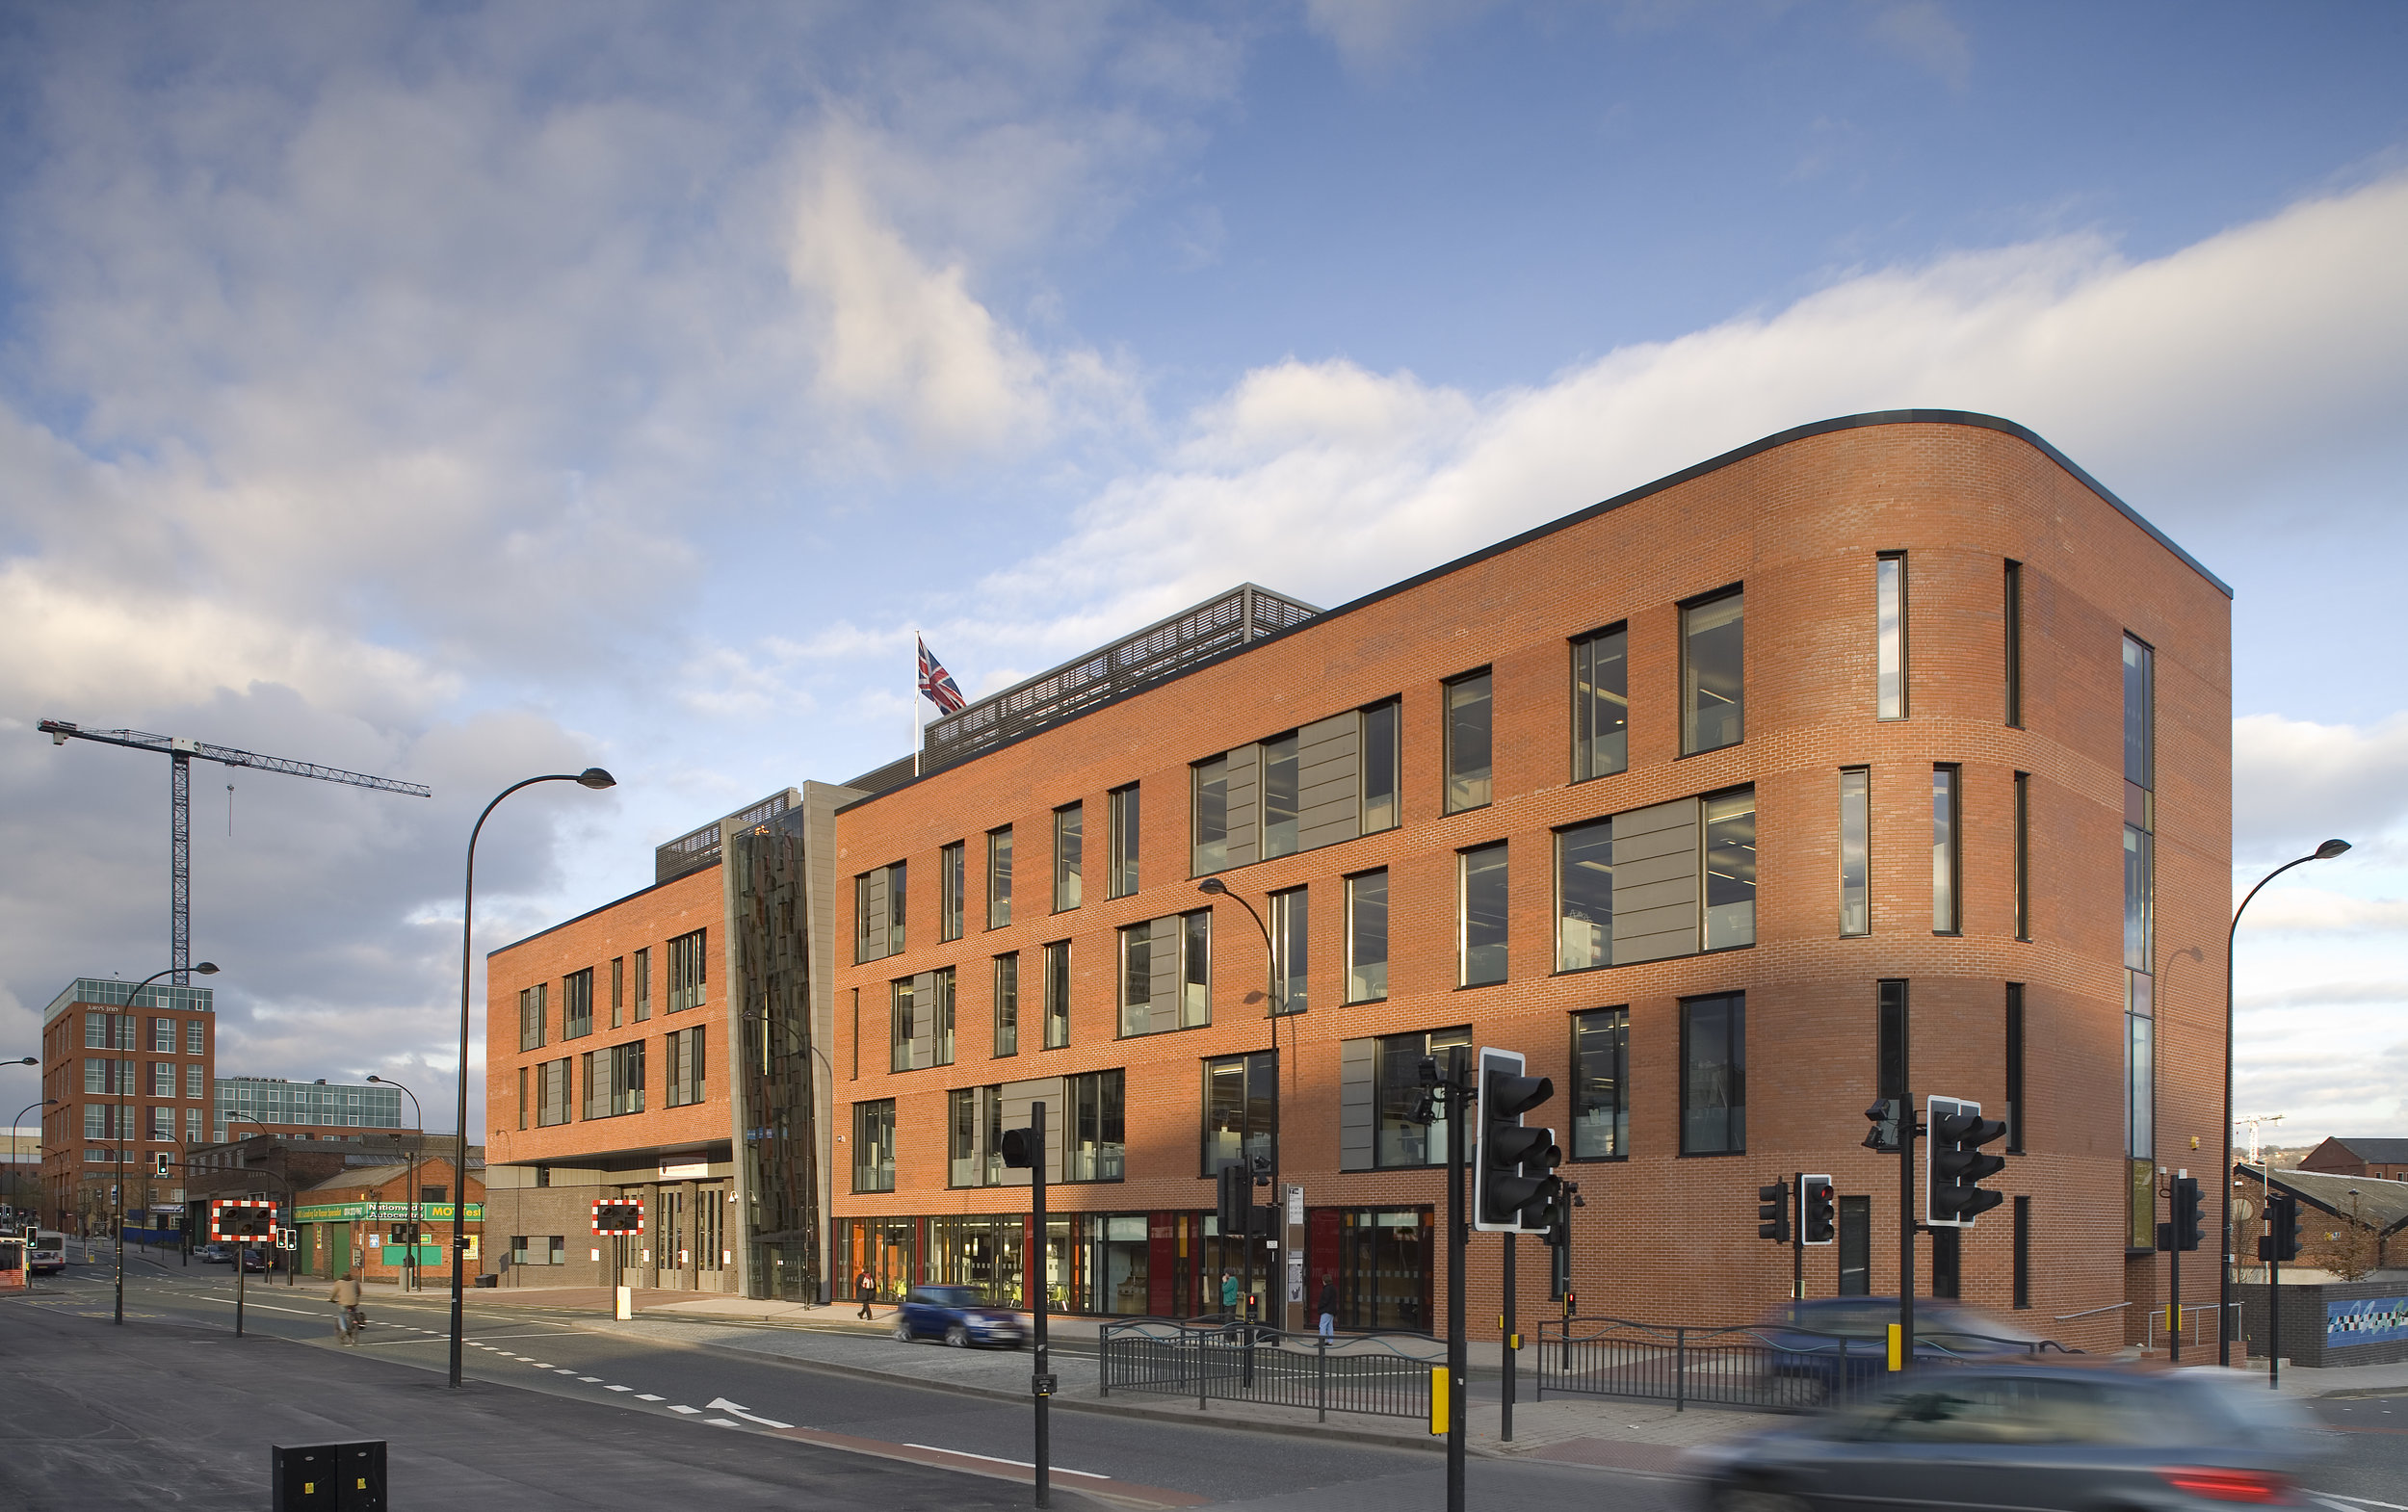 Stephen-Hill-Architects-Fire-Station-Sheffield-02